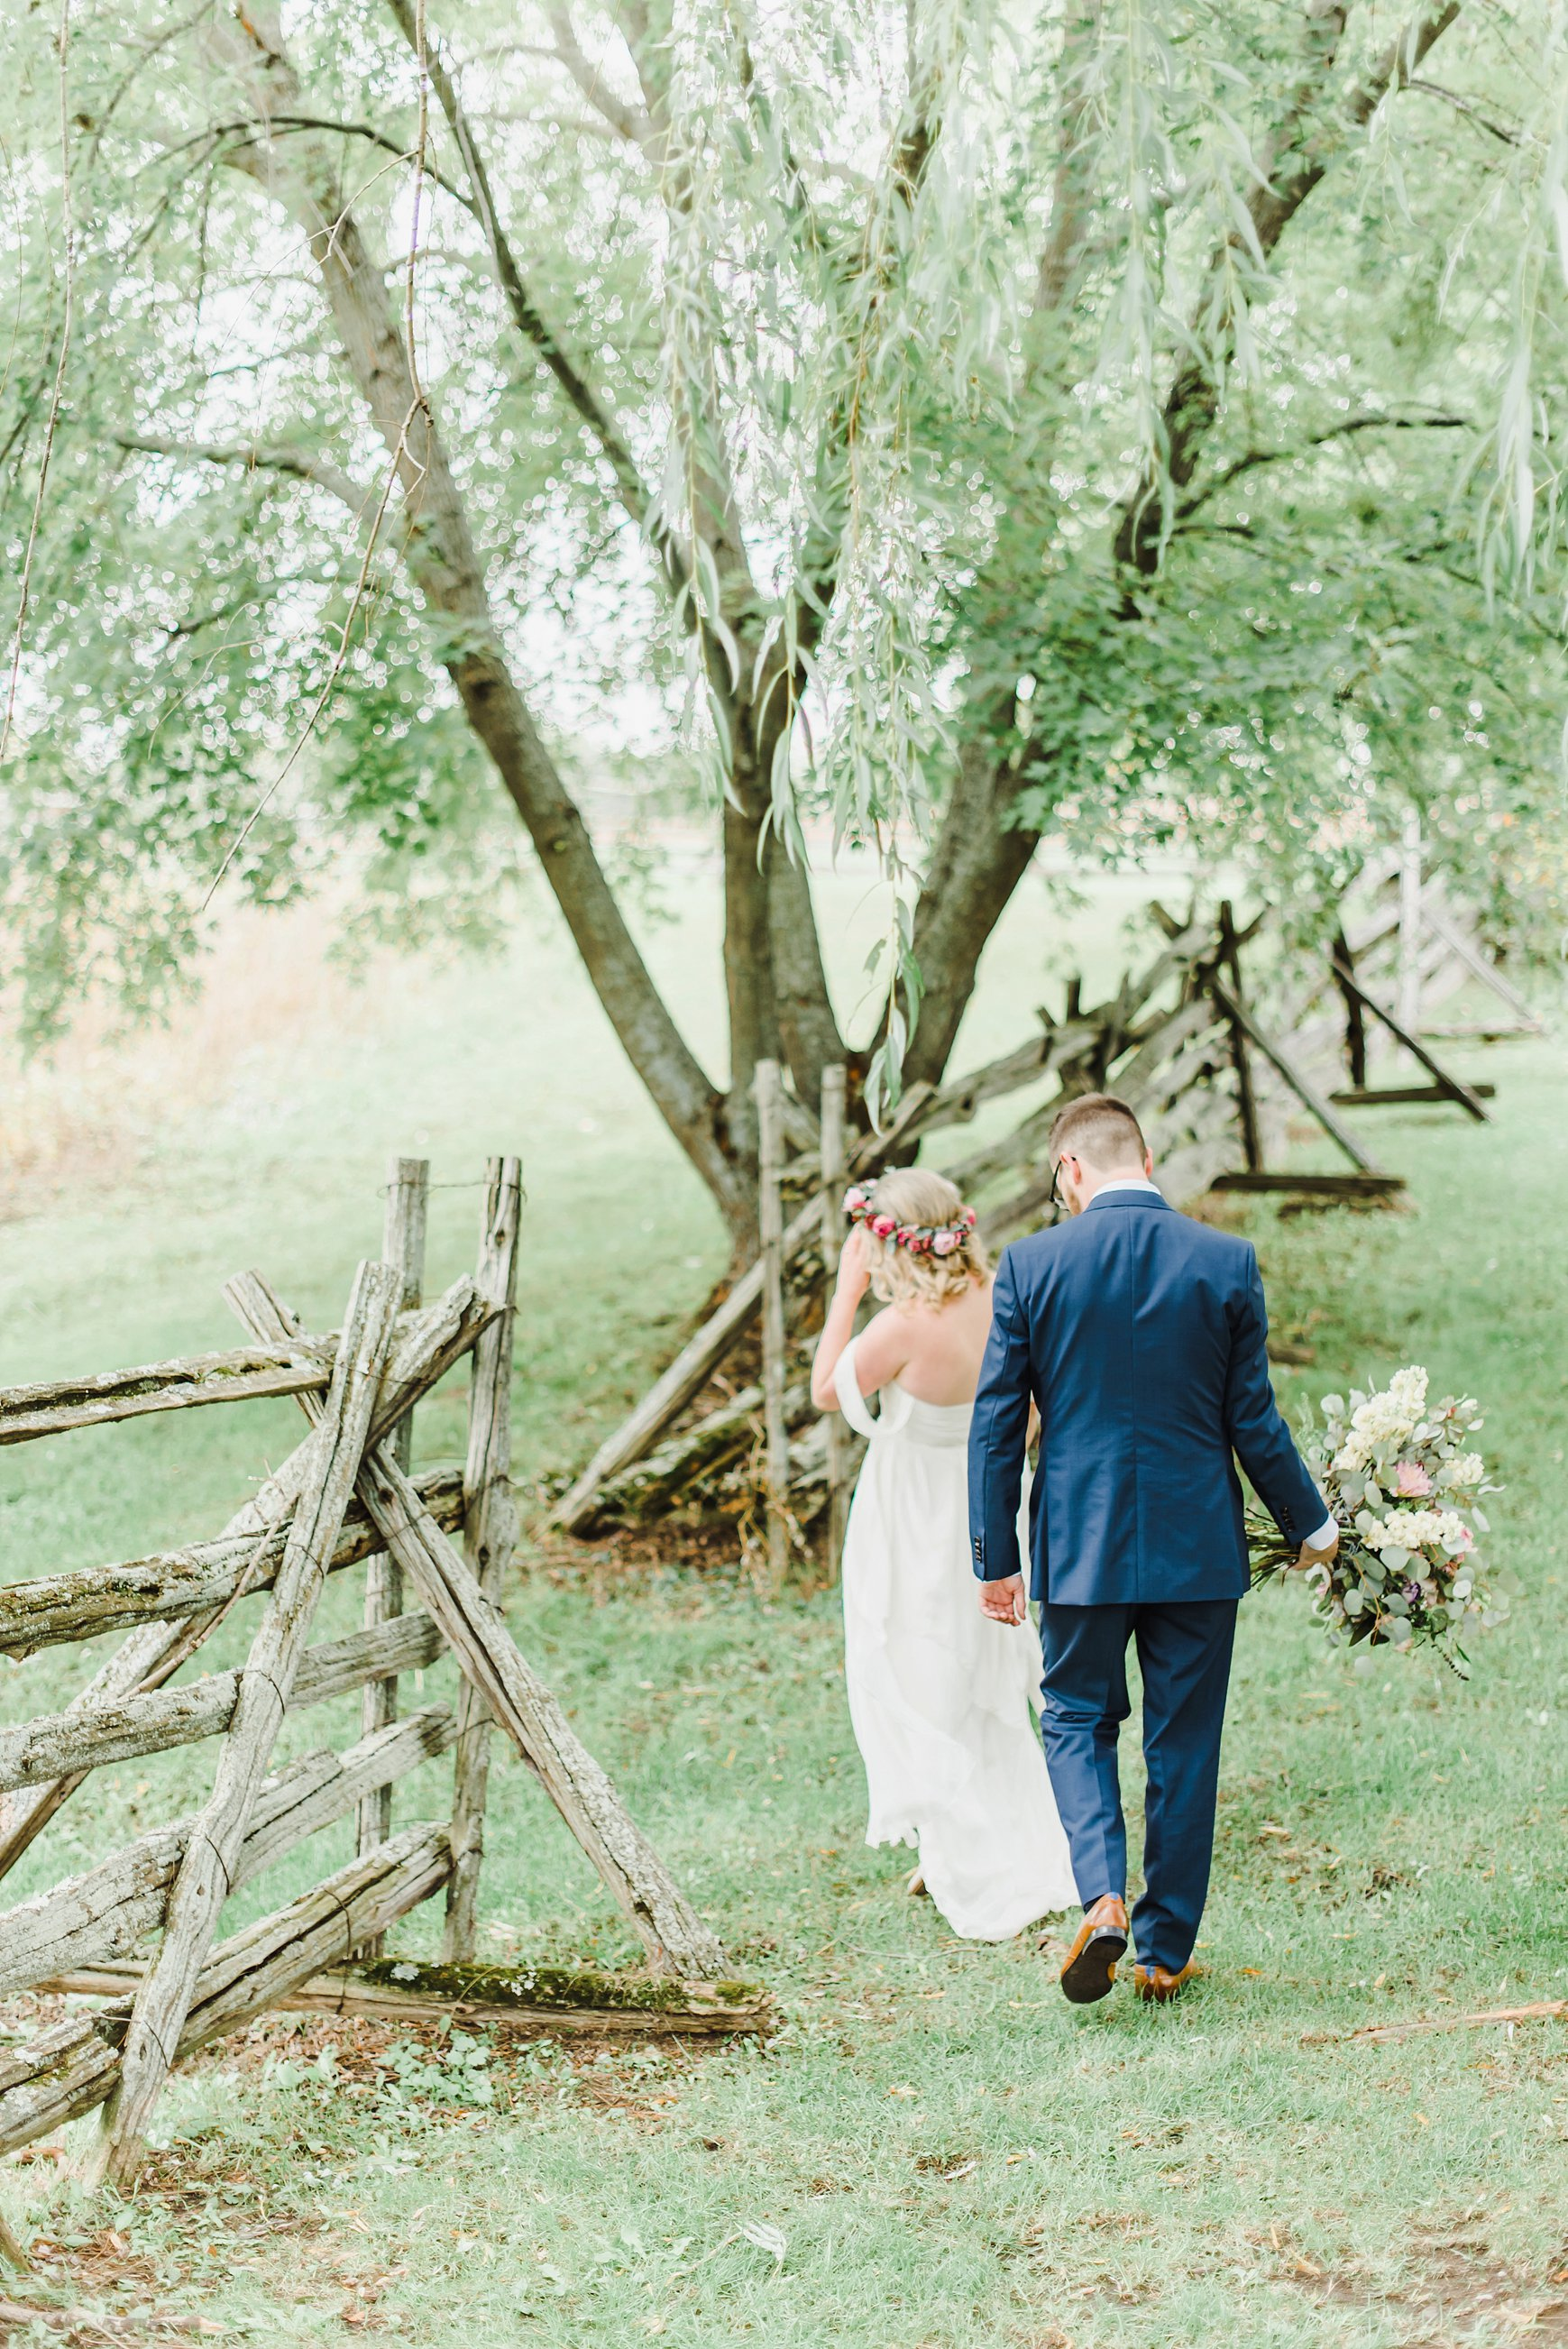 light airy indie fine art ottawa wedding photographer | Ali and Batoul Photography_0802.jpg